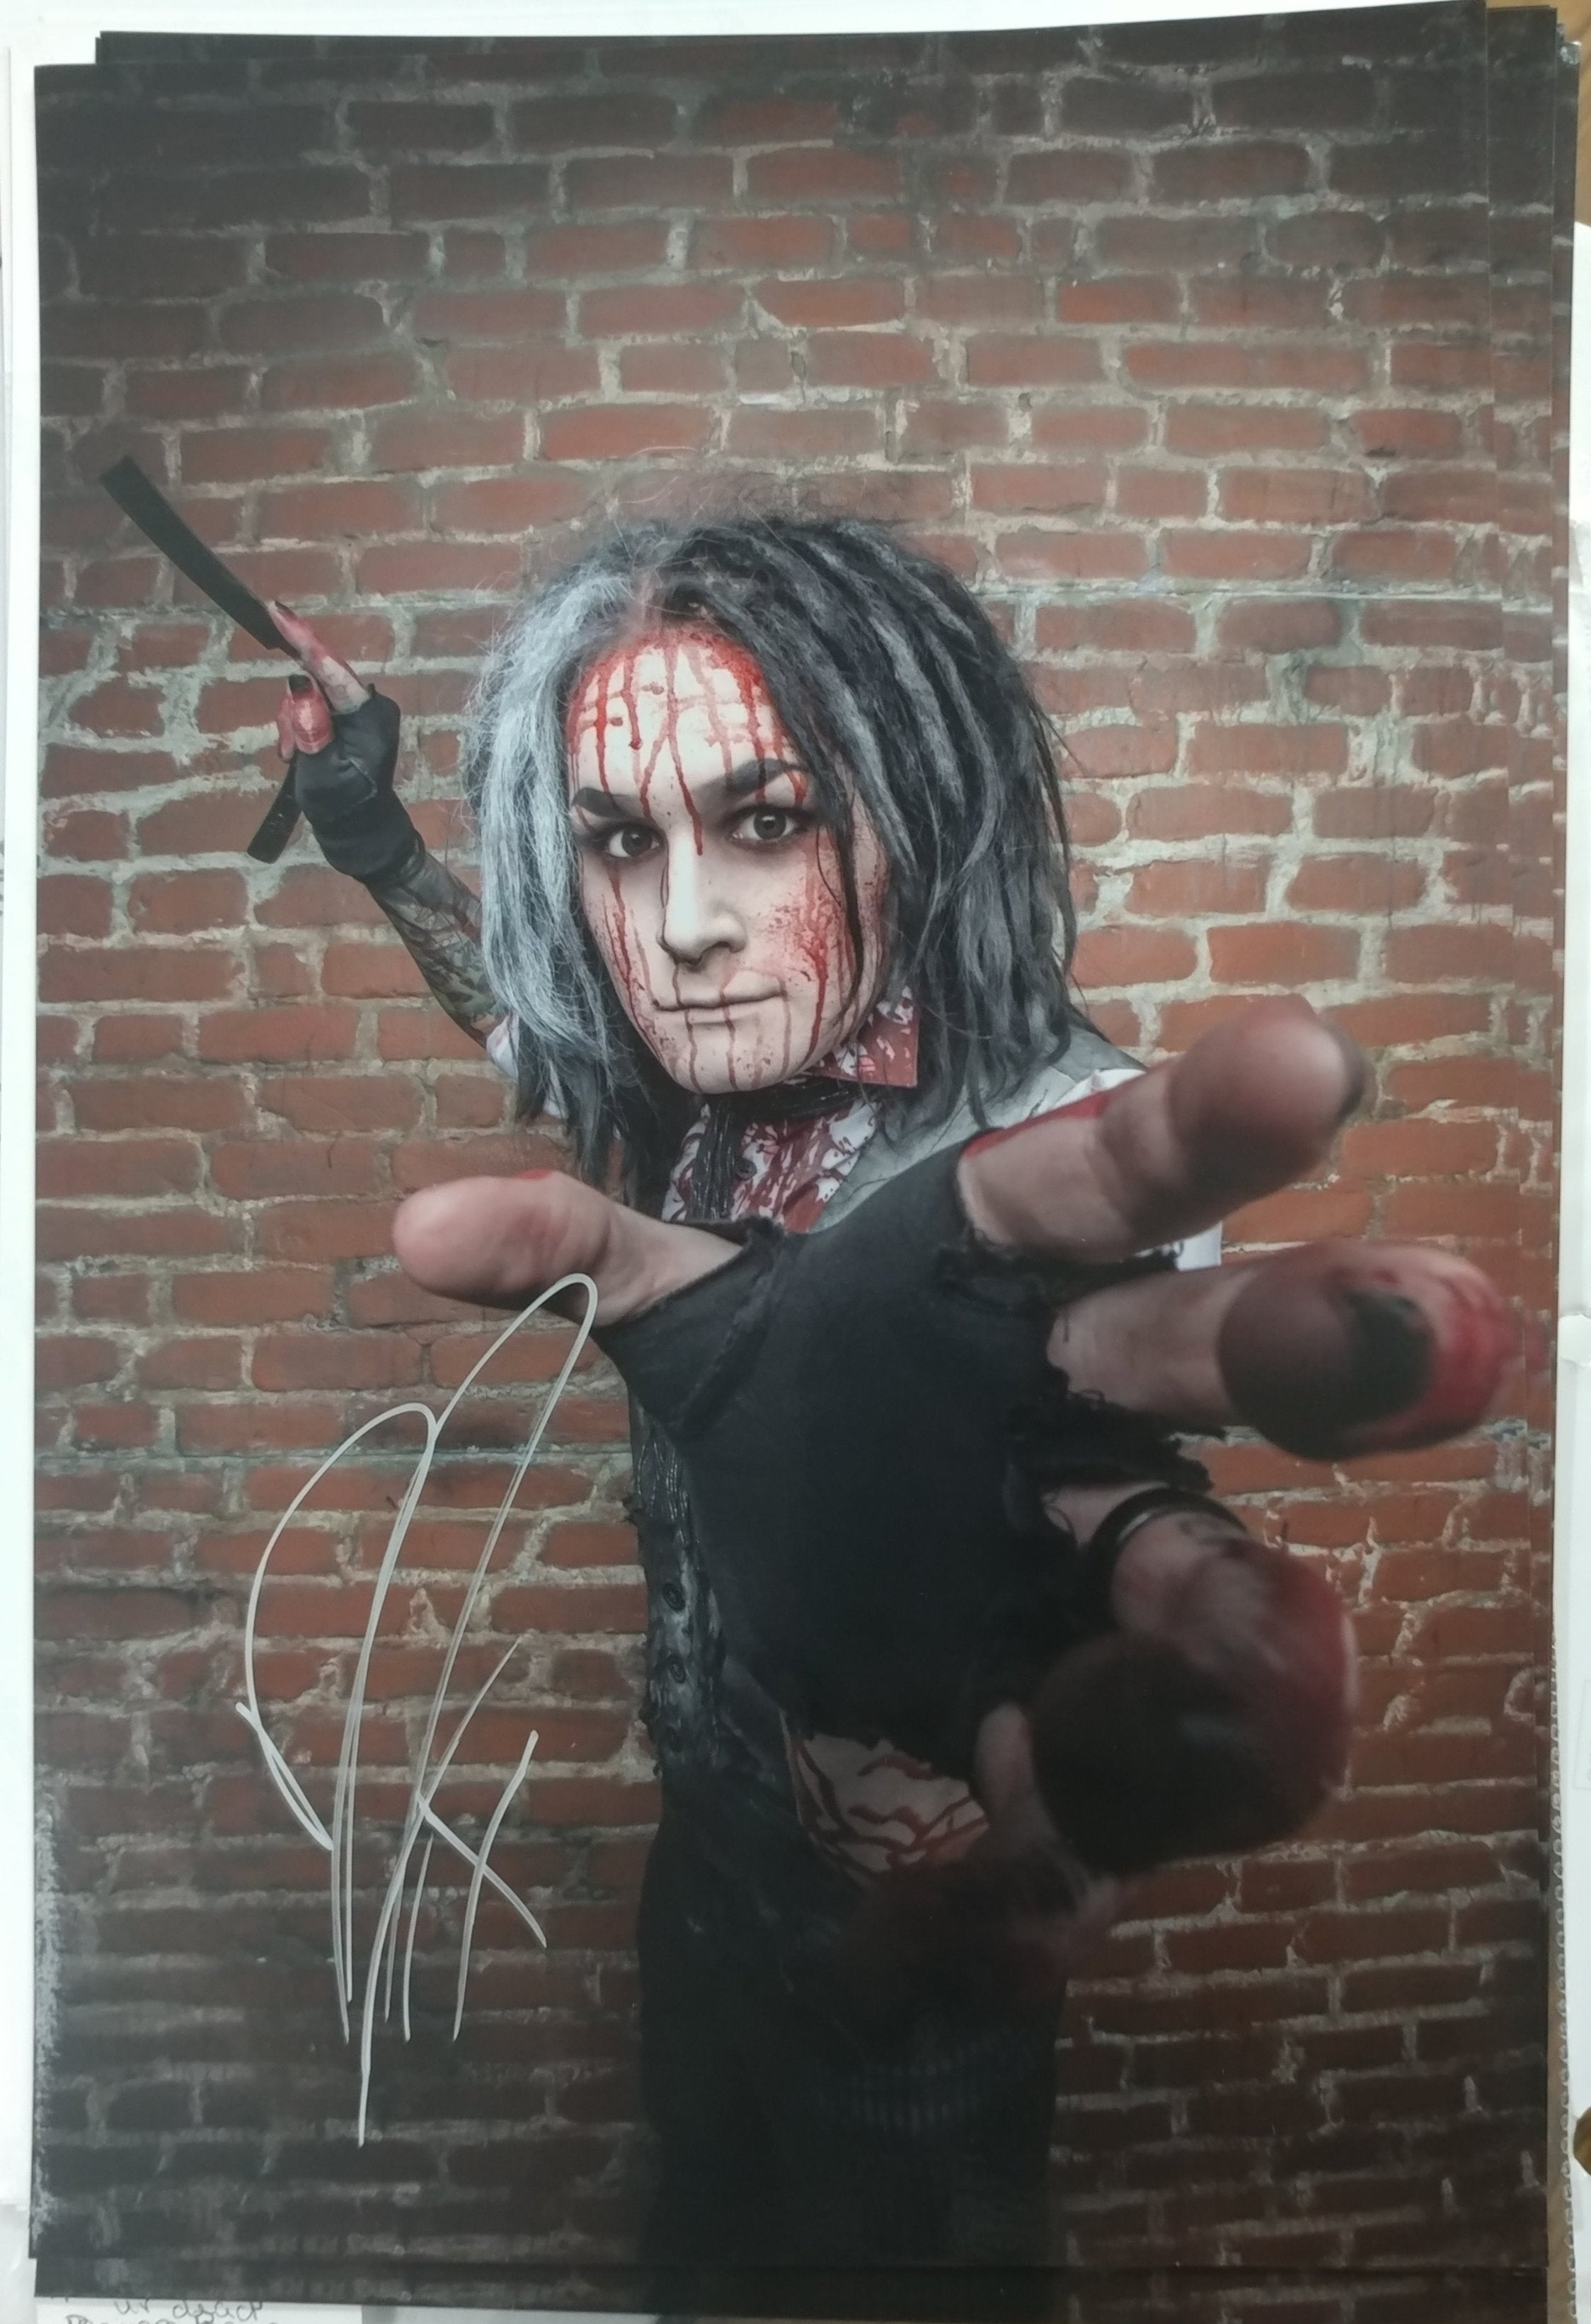 Ghost - Sweeny Todd Grab - signed metallic print (only 6 available)